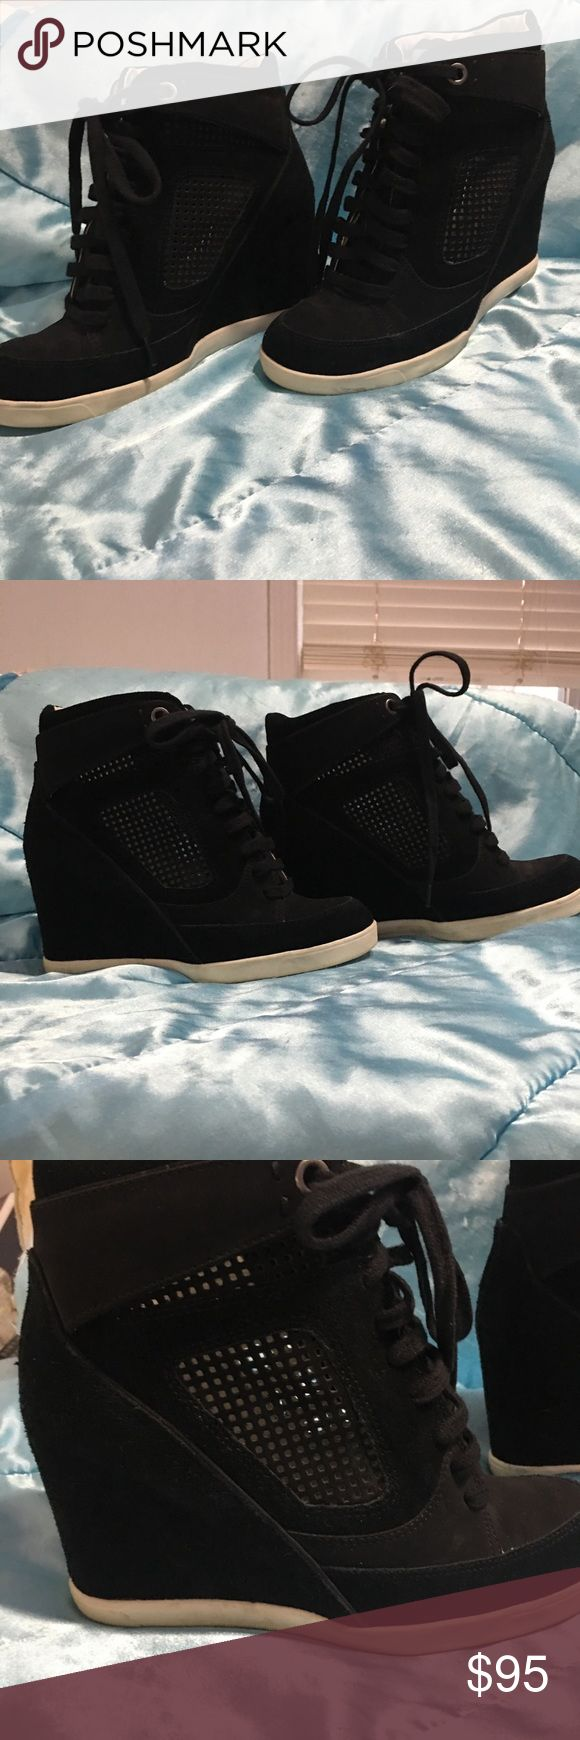 French connection stacked lace up booties Gorgeous French connection stacked lace up booties in a suede feel with airpass through design iridescent tongue that shows through laces French connection Shoes Ankle Boots & Booties